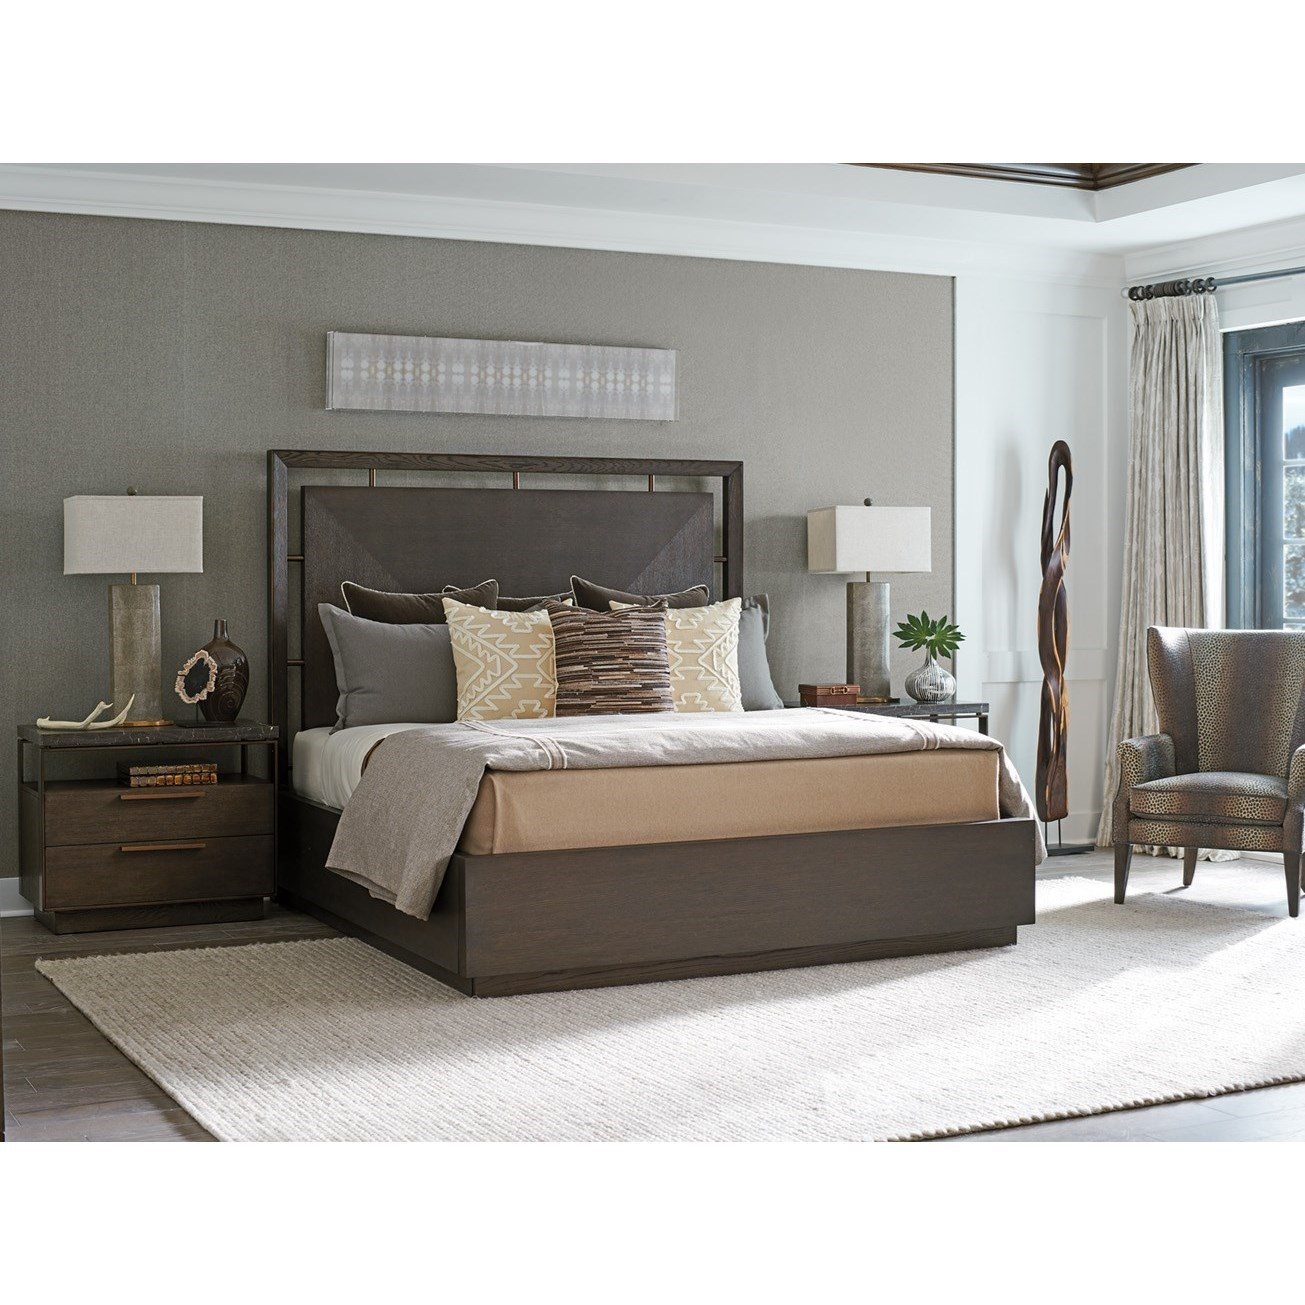 Park City King Bedroom Group by Barclay Butera at Baer's Furniture